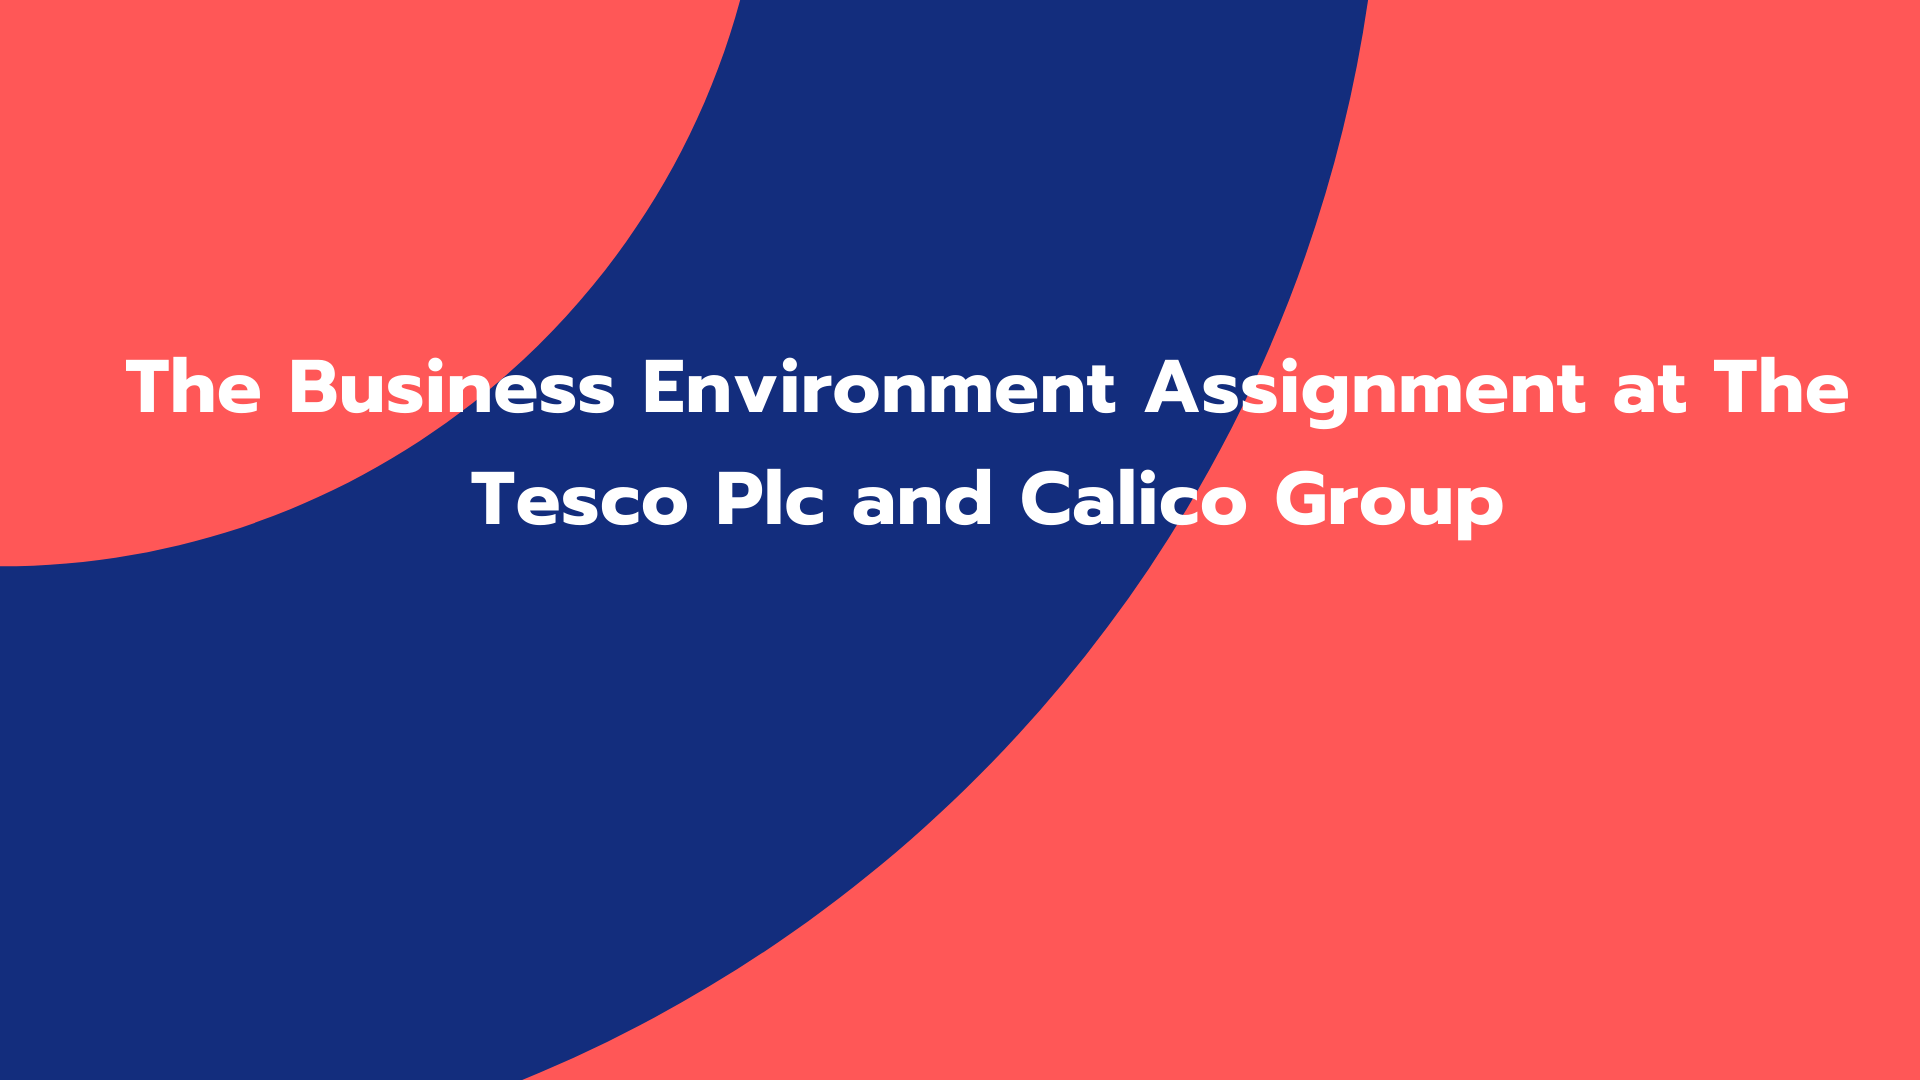 The Business Environment Assignment at The Tesco Plc and Calico Group